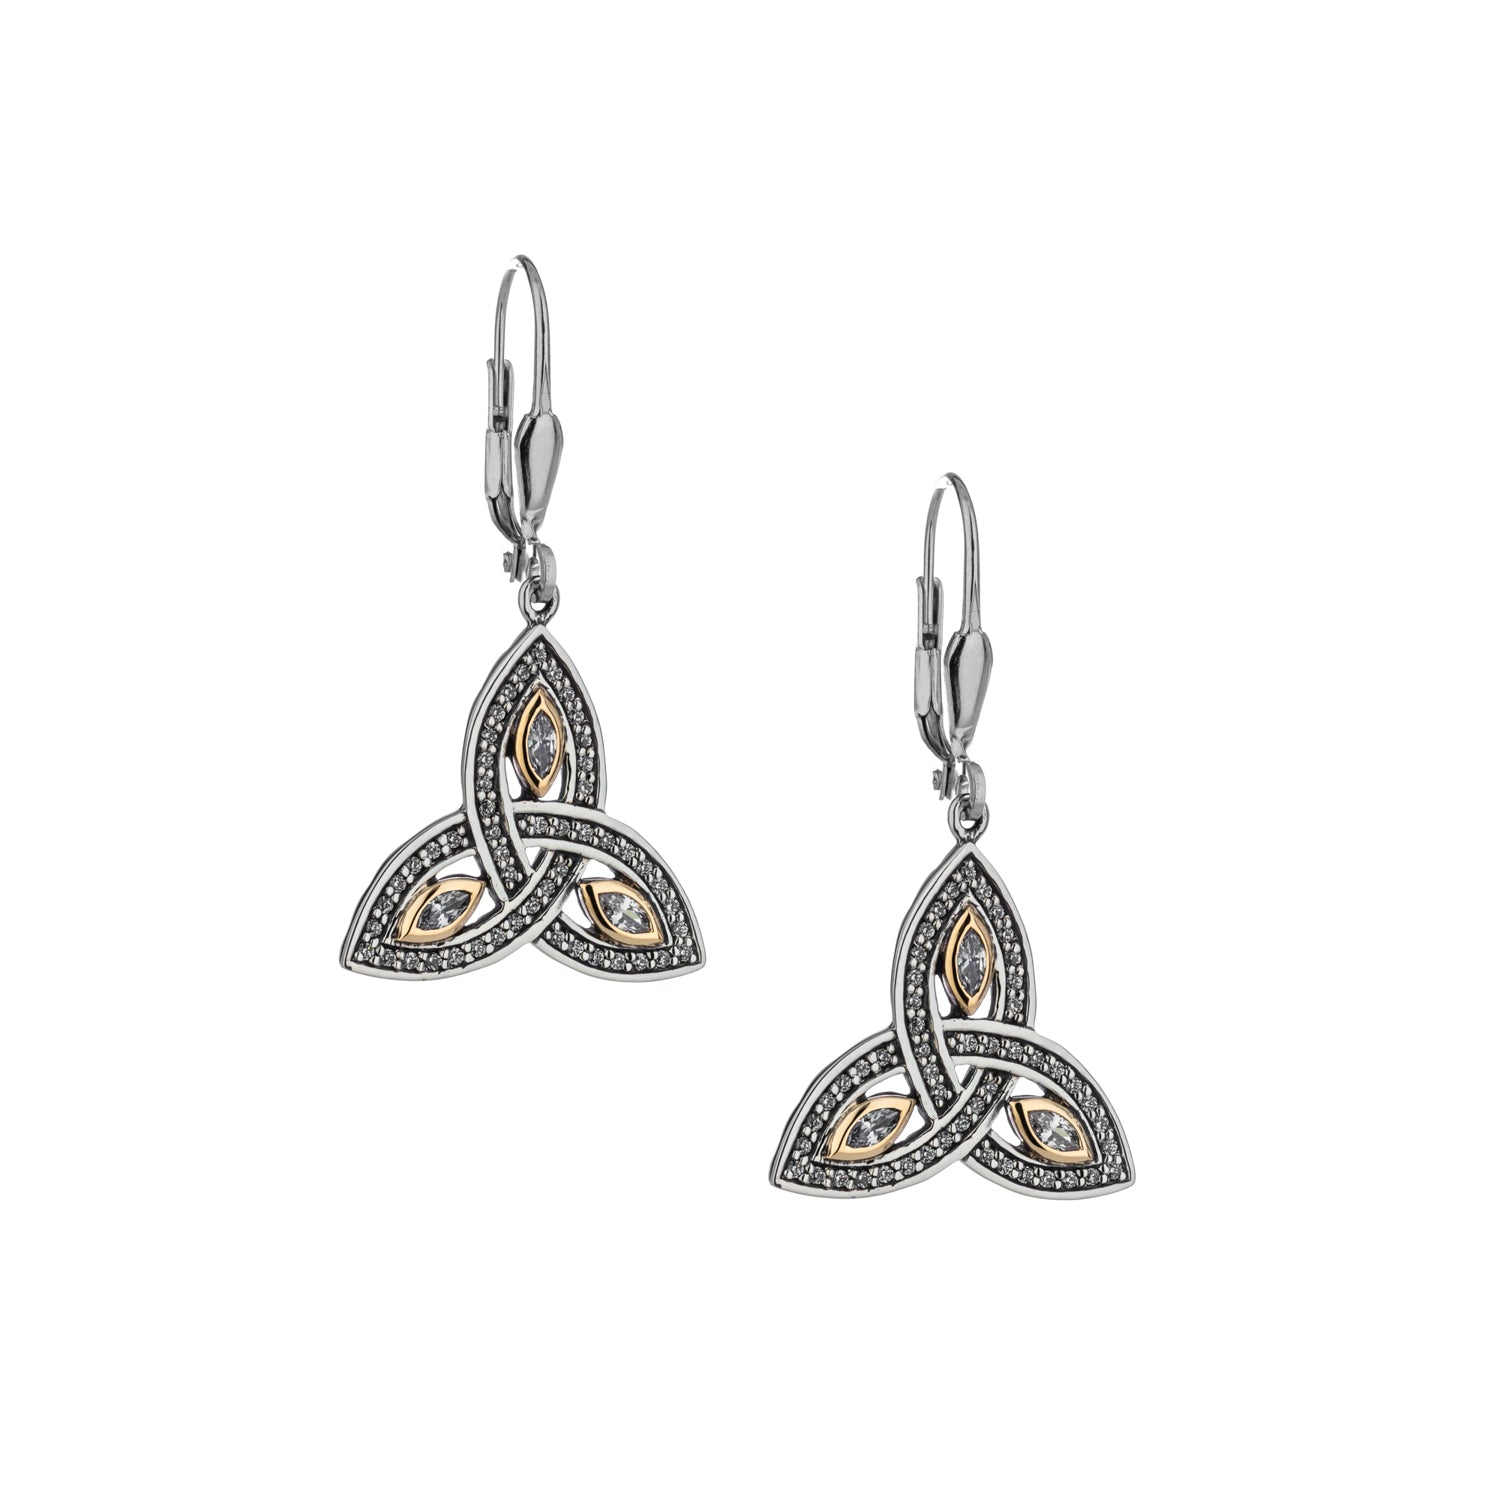 Earrings 10k CZ Trinity Leverback Earrings from welch and company jewelers near syracuse ny